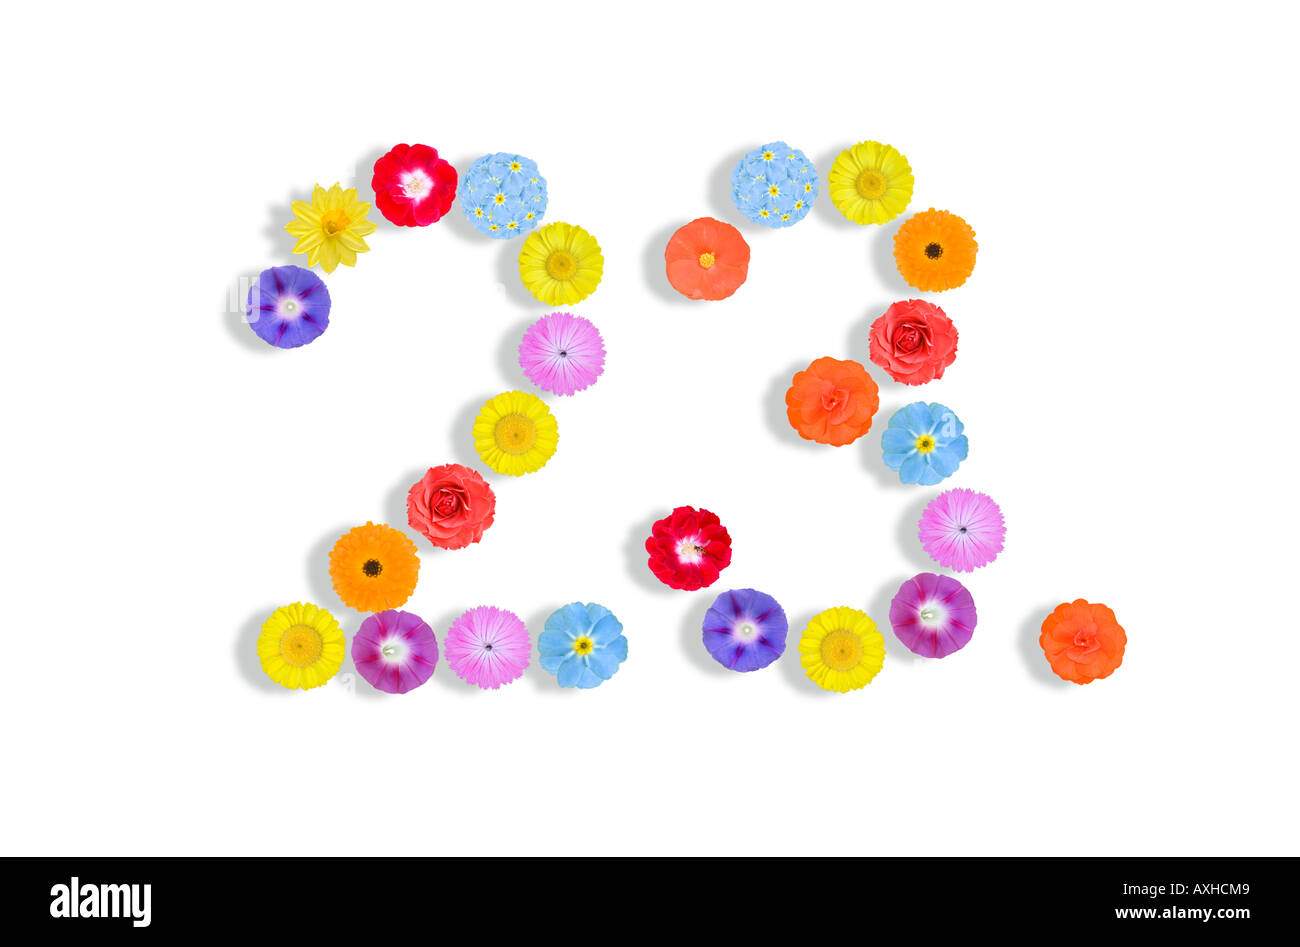 numbers written with flowers 23rd - Stock Image